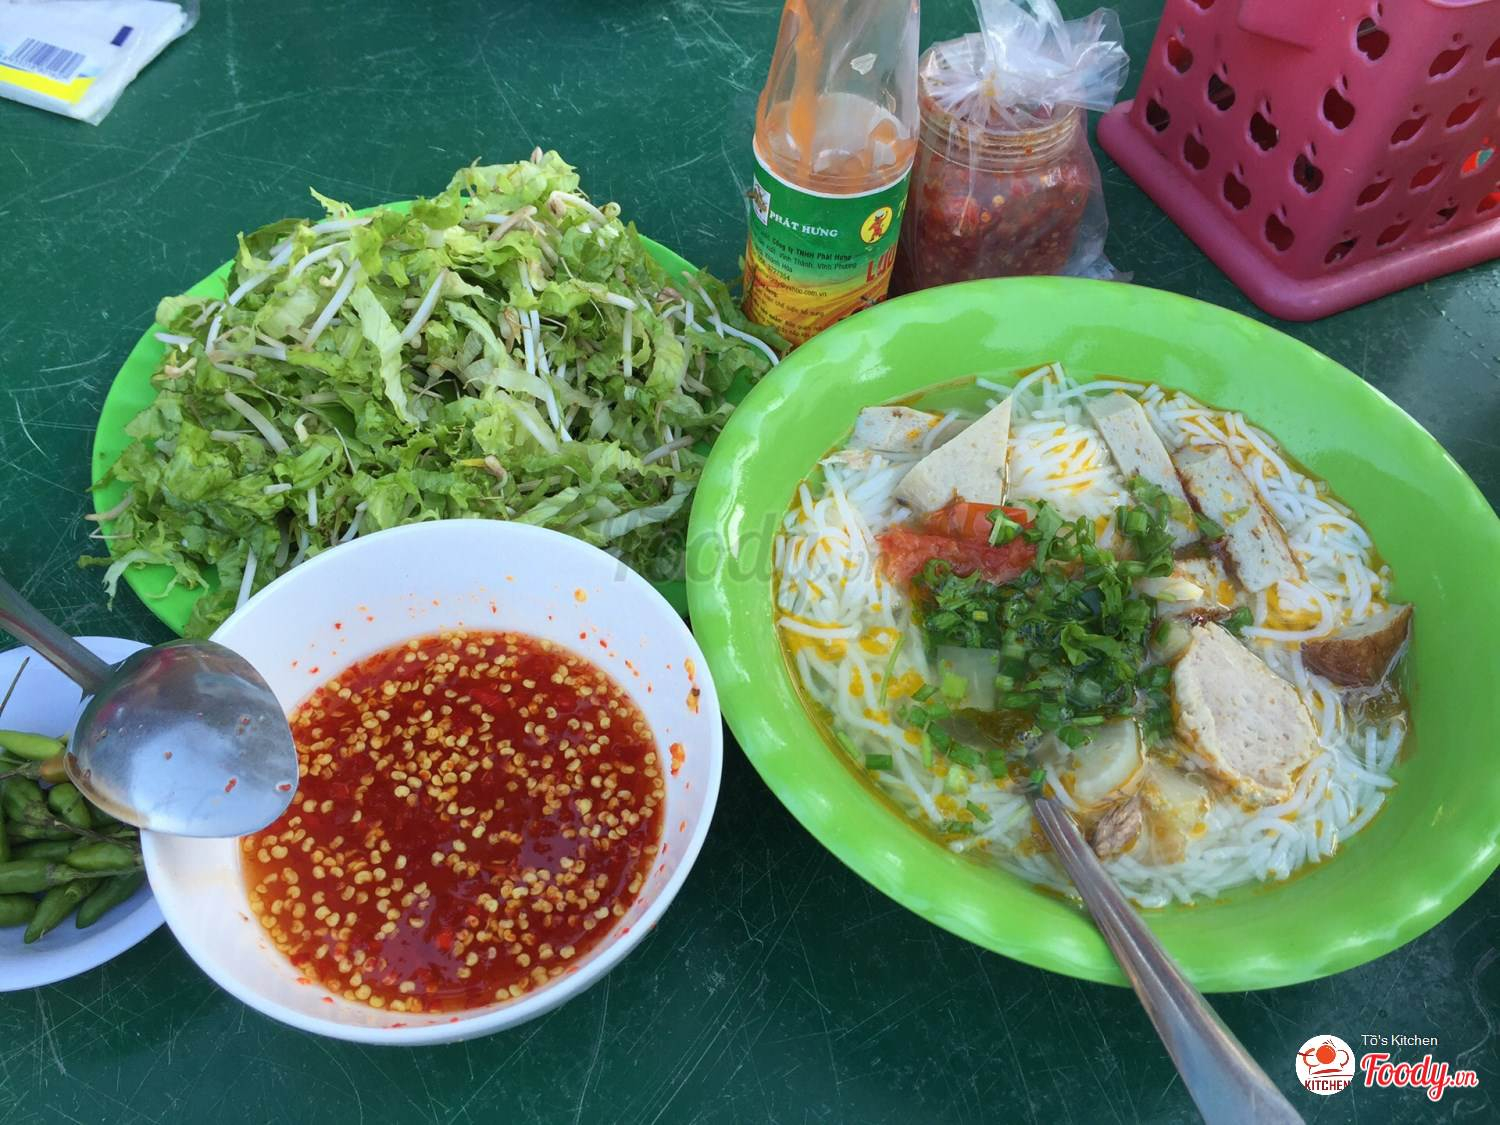 Description: http://media.foody.vn/images/foody-cho-binh-ba-dao-binh-ba-498-635942388722133783.jpg